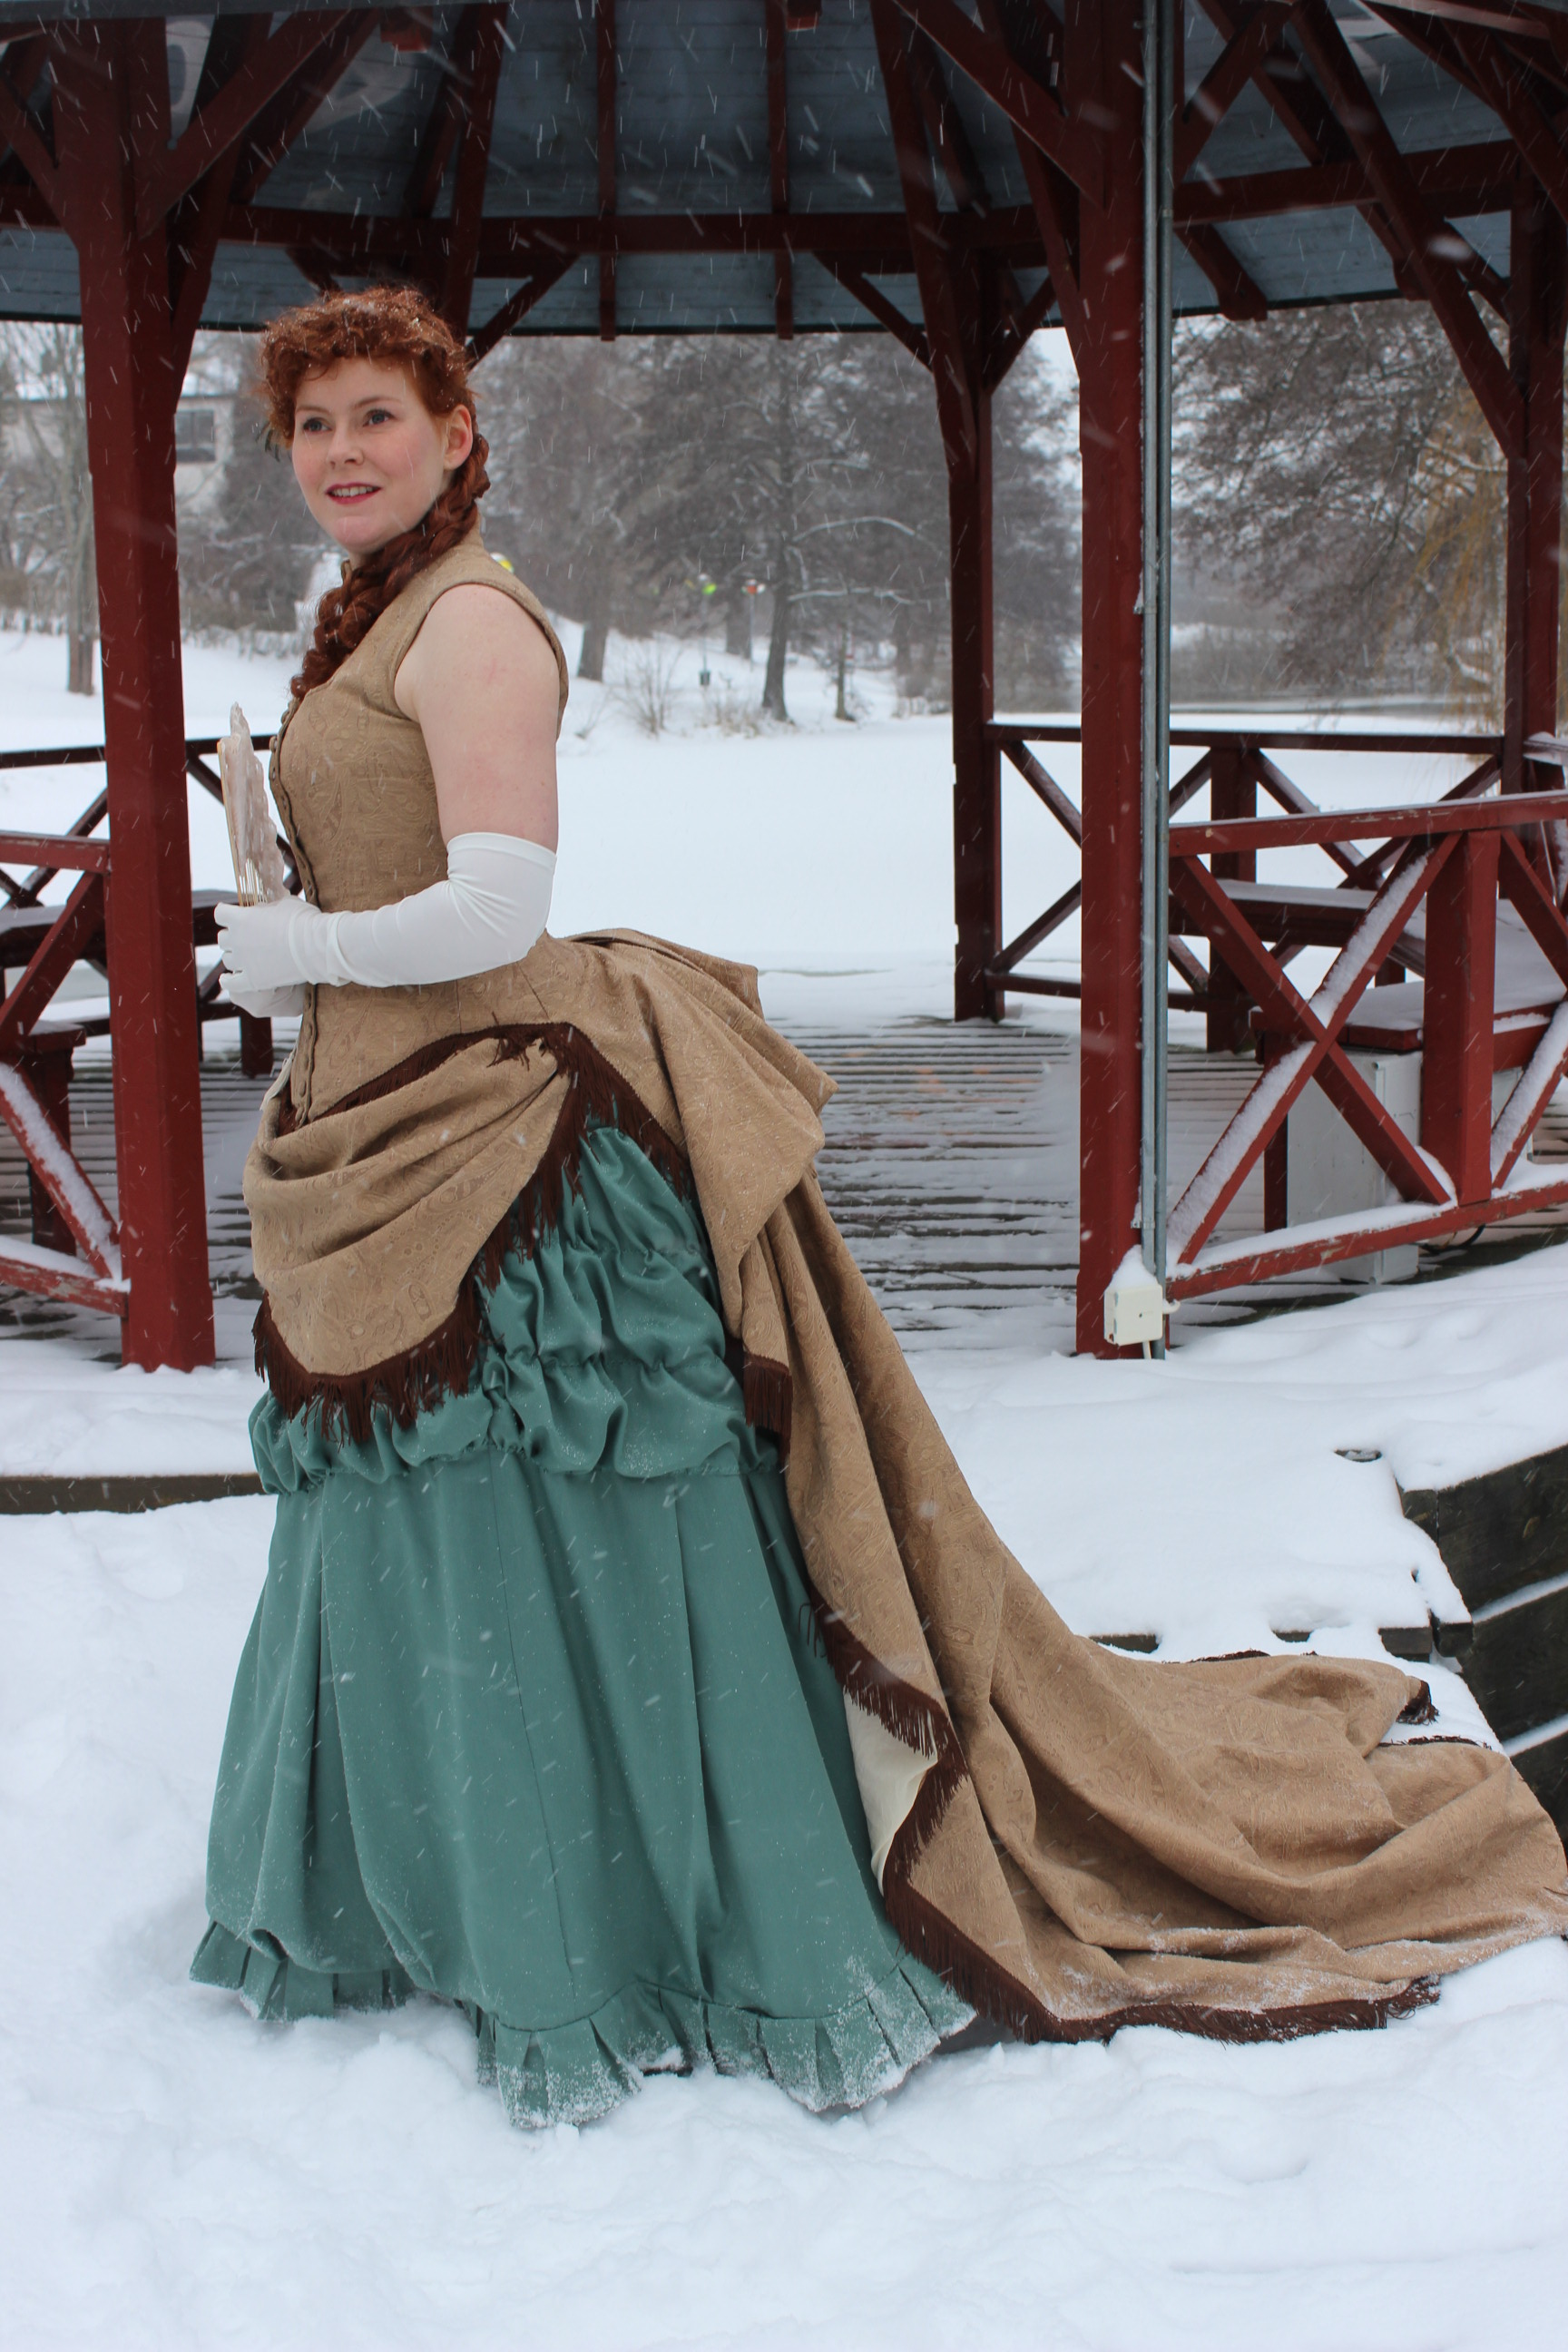 Fashion Through The Decades: 1880s Evening Gown